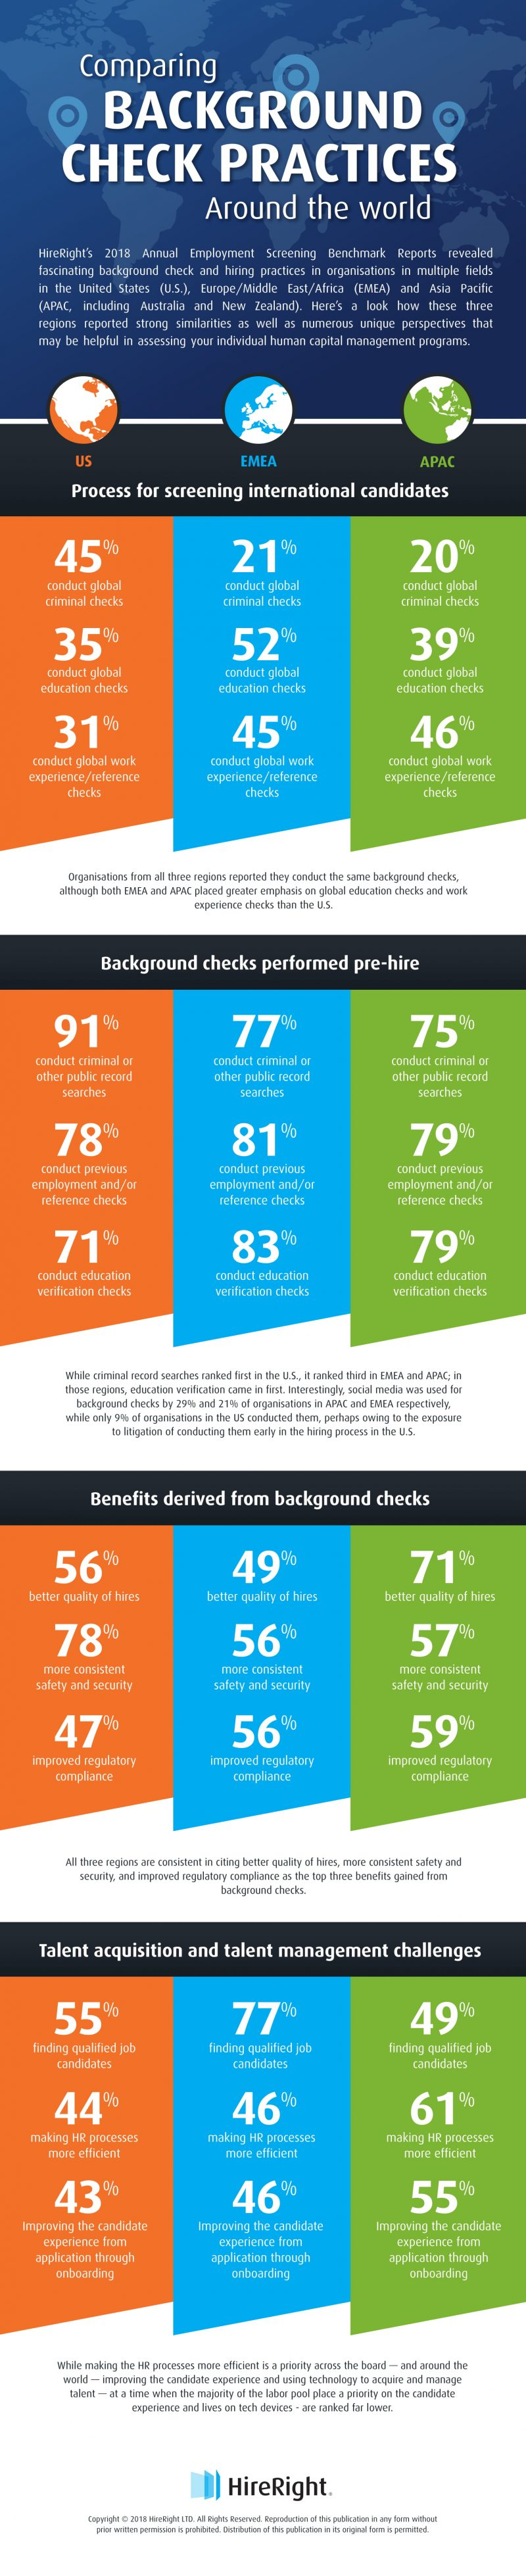 Comparing_background_checks_infographic_HireRight